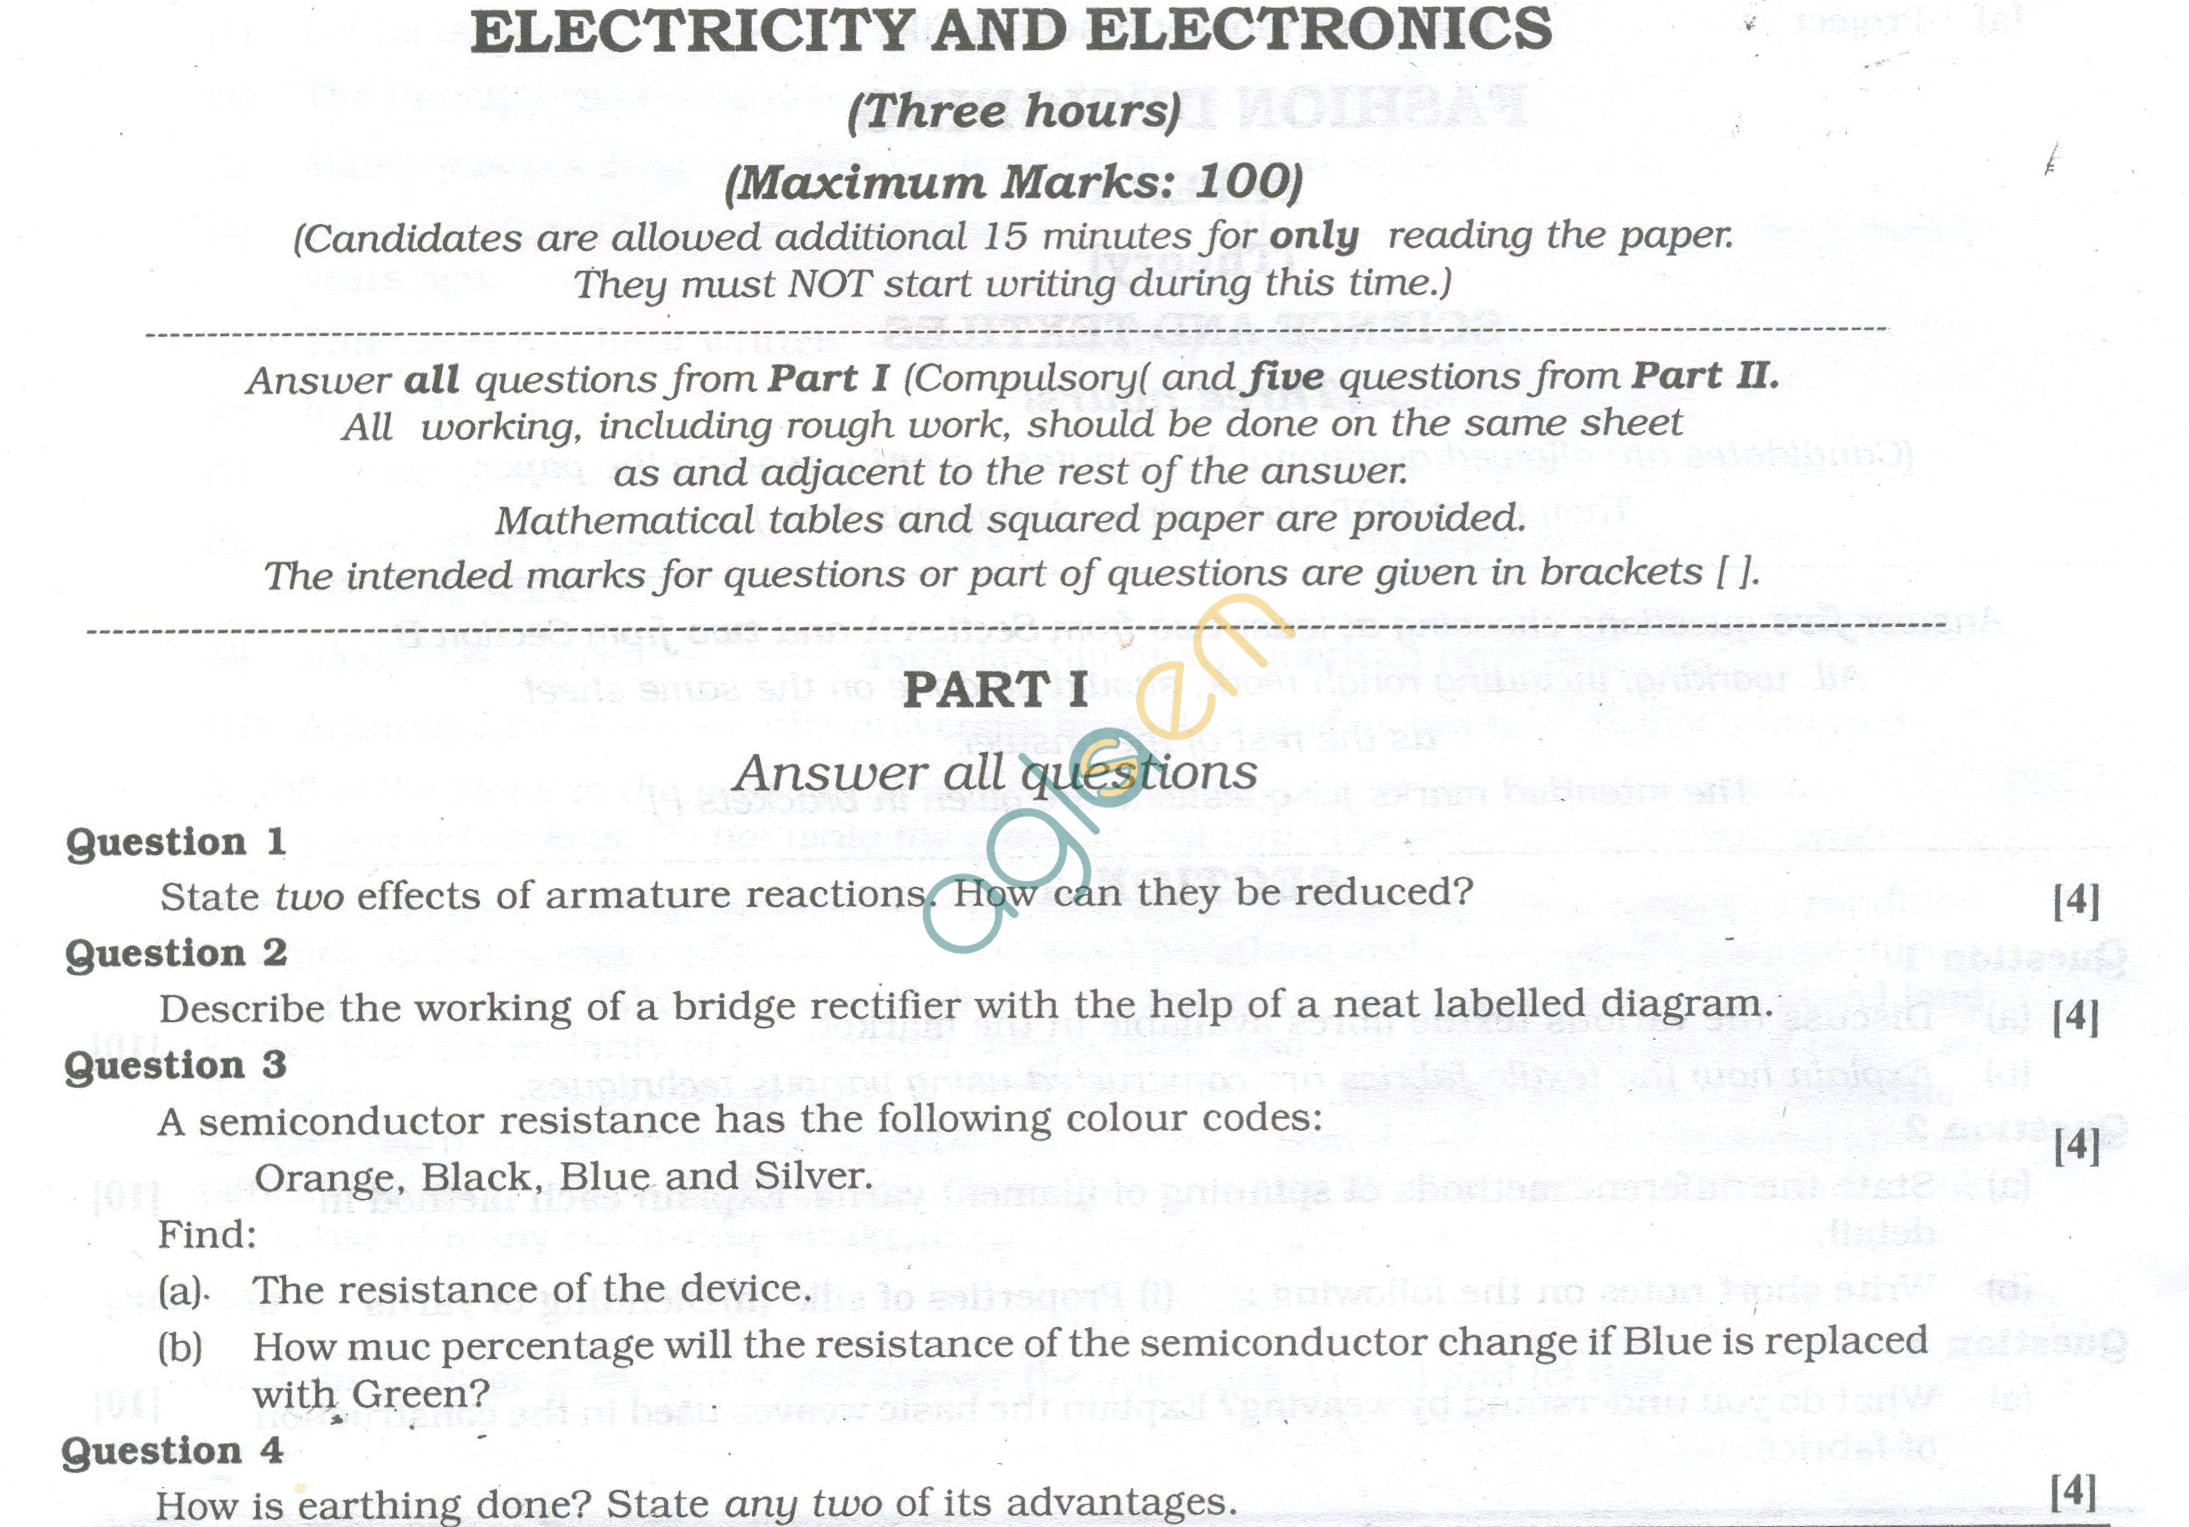 ISC Question Papers 2013 for Class 12 - Electricity and Electronics